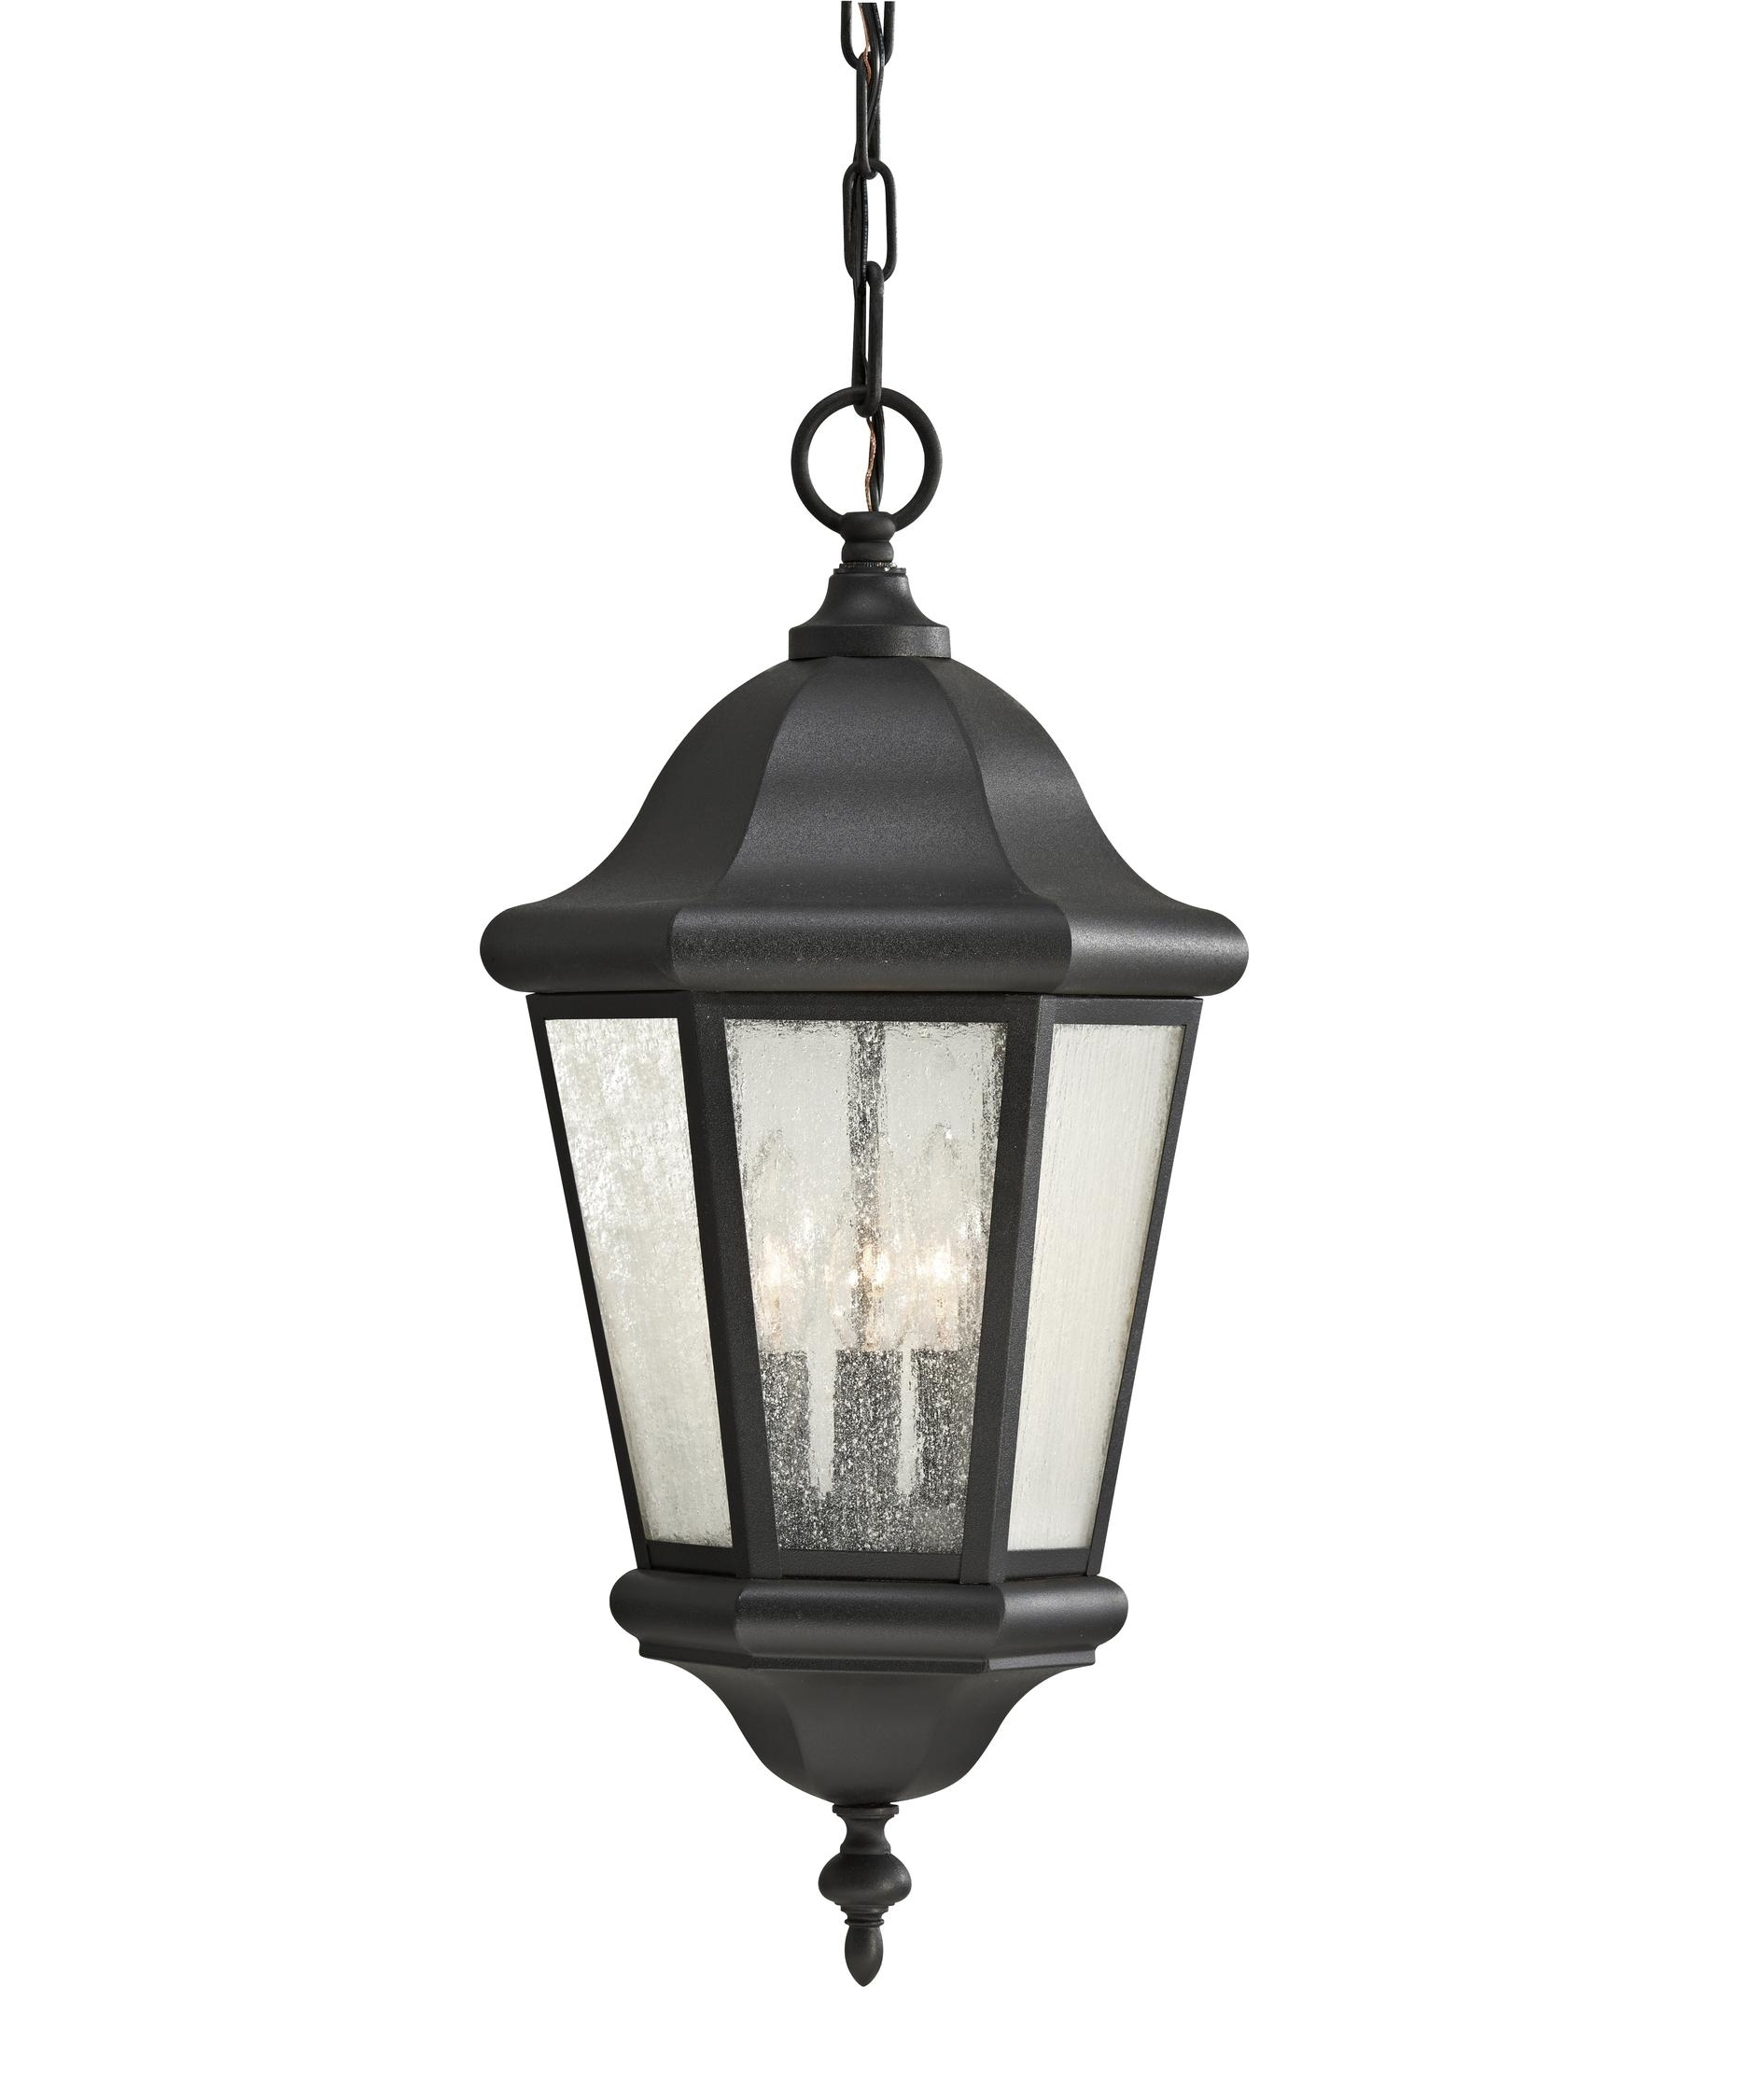 Newest Solar Powered Outdoor Hanging Lanterns In Outdoor : Decorative 2 Filigree Solar Lanterns Perfect For Patio Or (View 16 of 20)